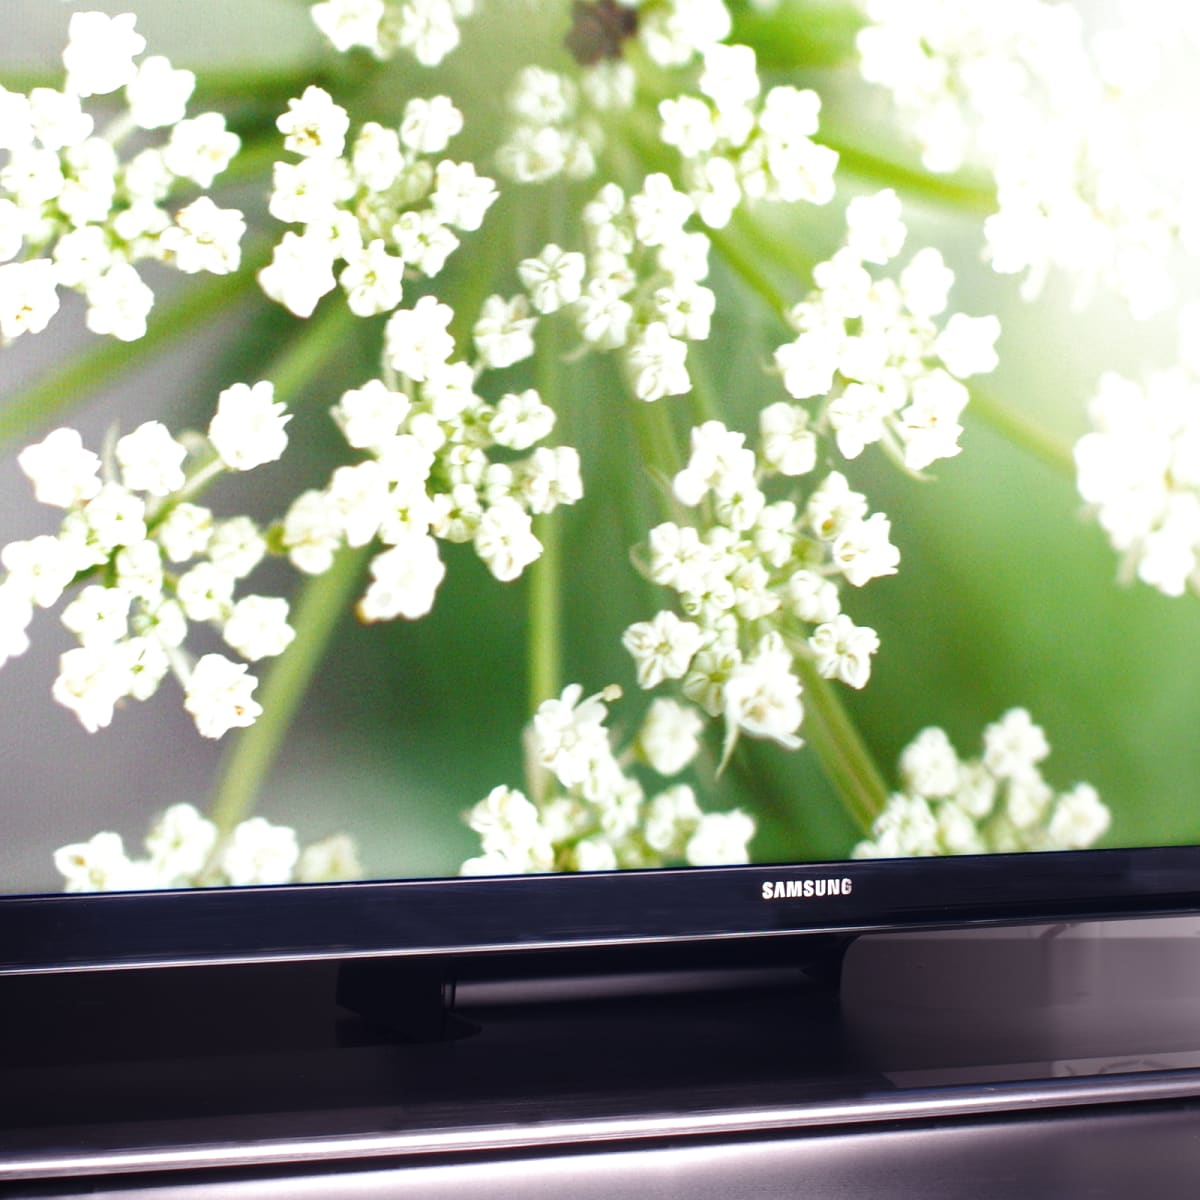 Samsung UN40HU6950 4K LED TV Review - Reviewed Televisions